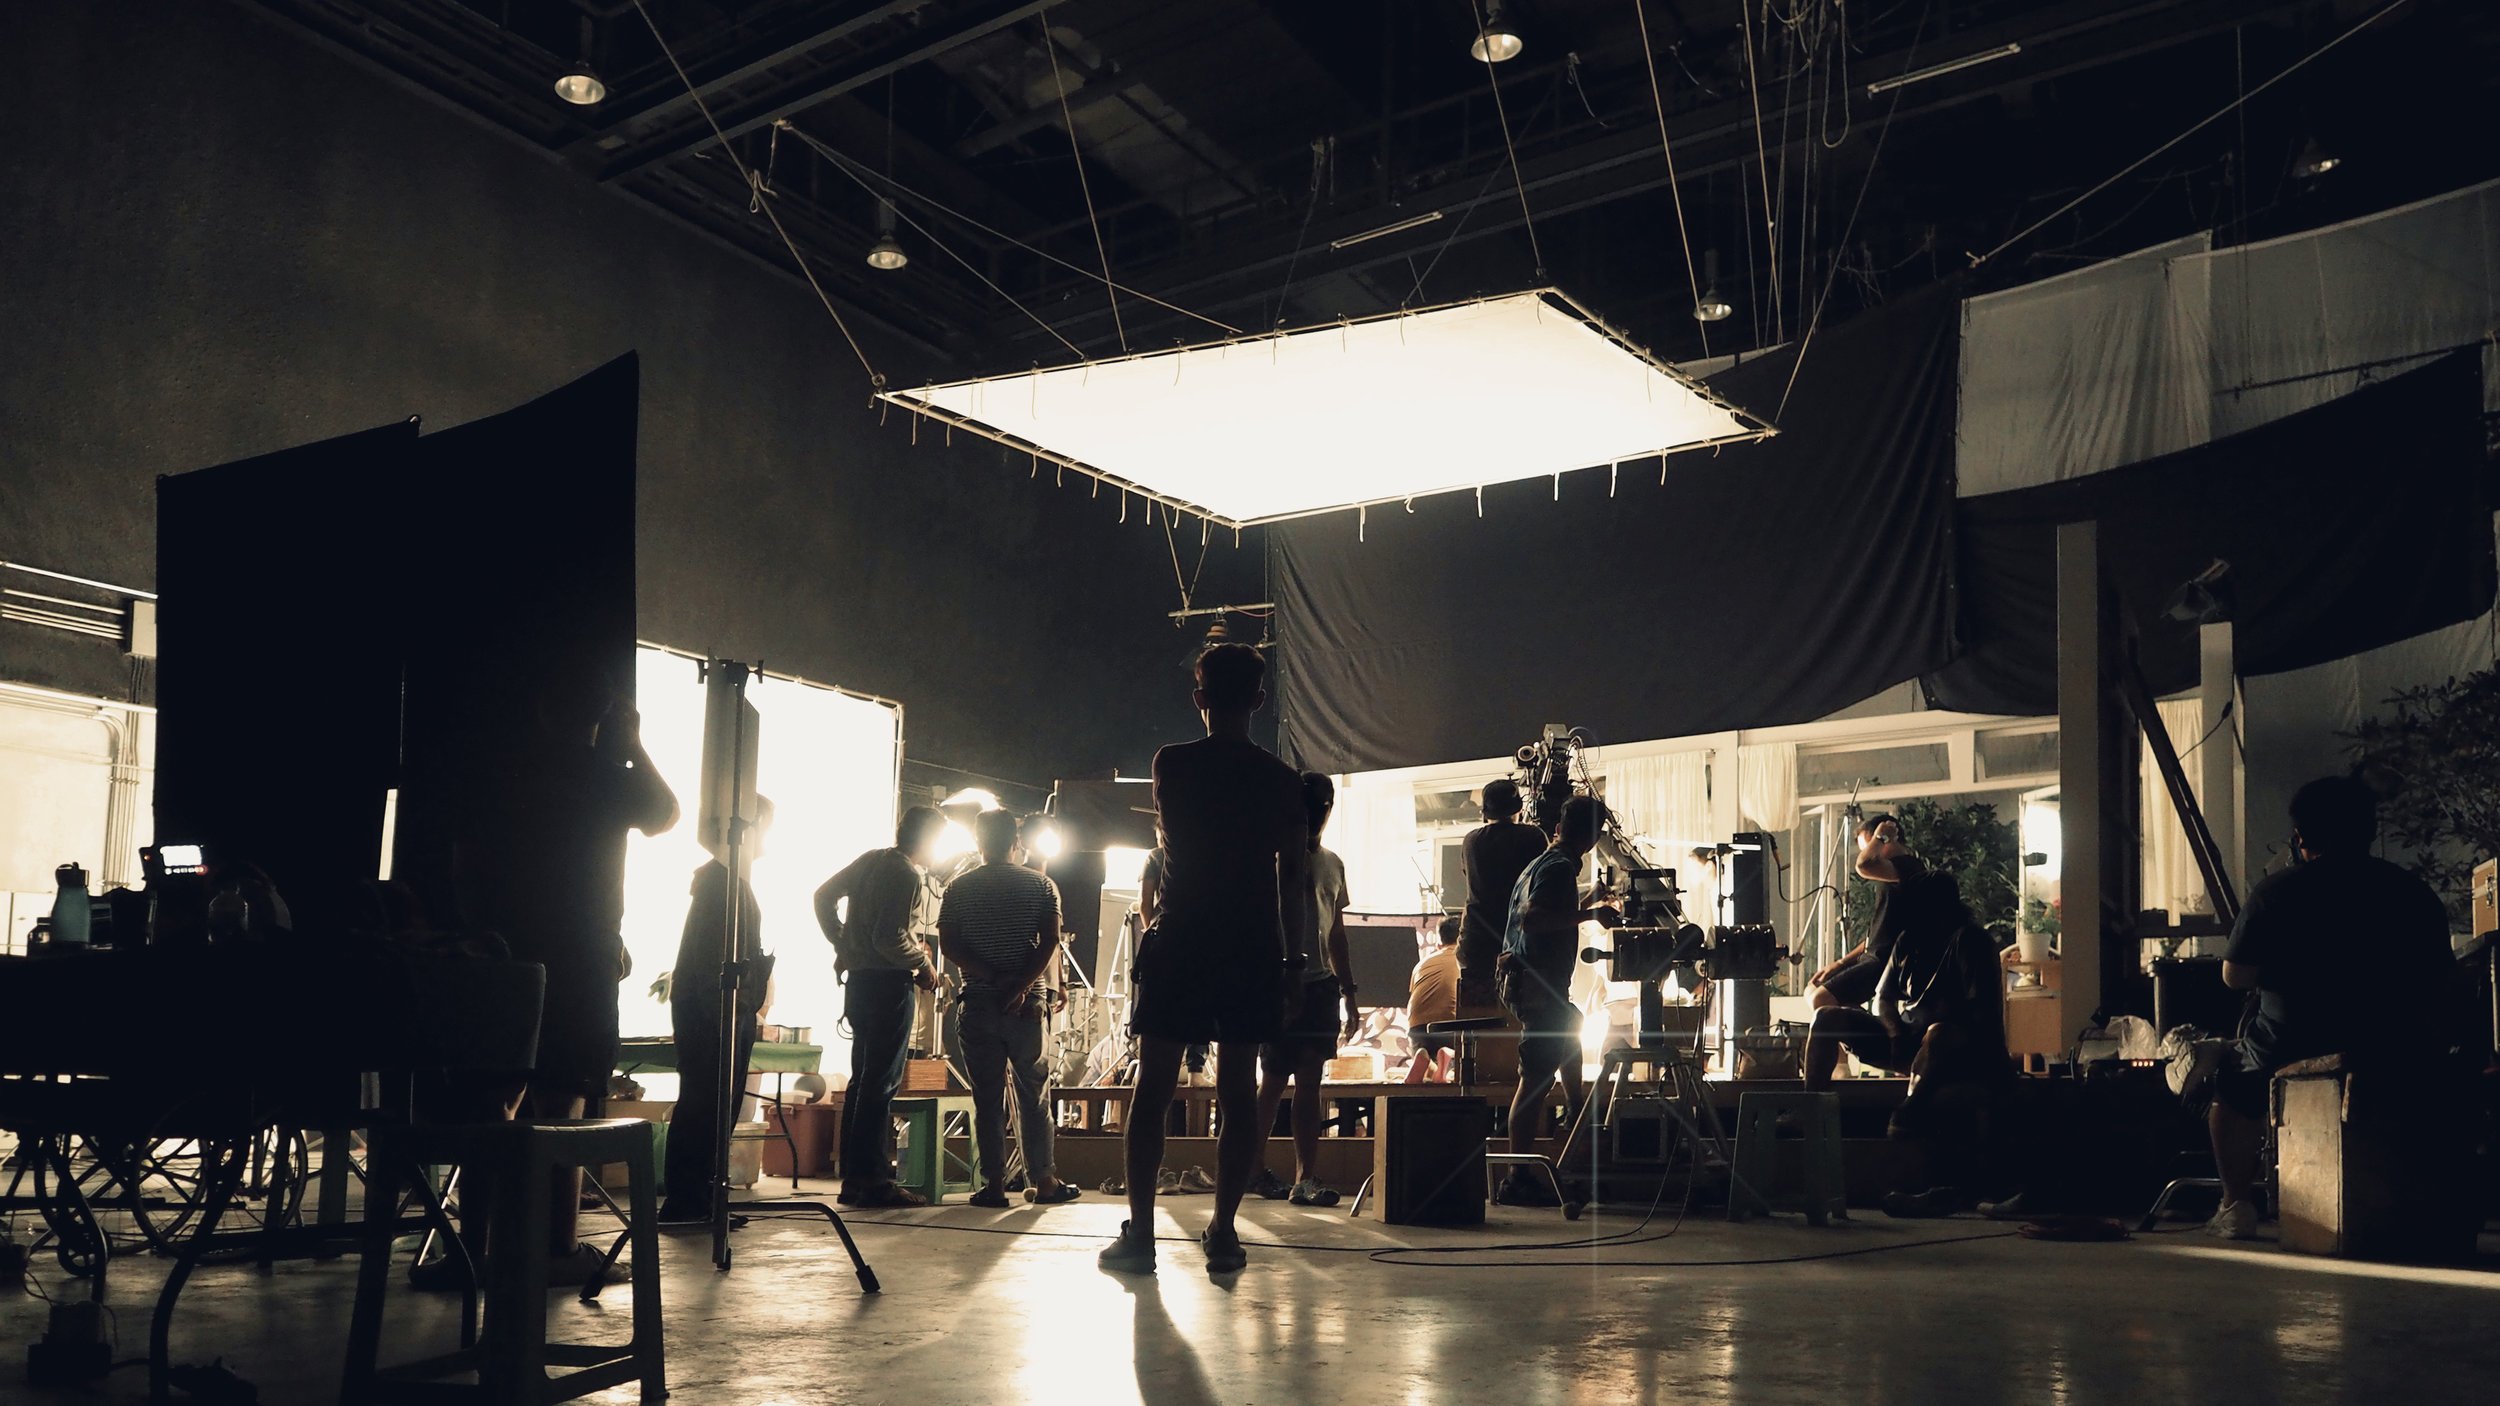 Behind the scenes of silhouette people working in big production studio with professional set and lighting for making movie film or video commercial.